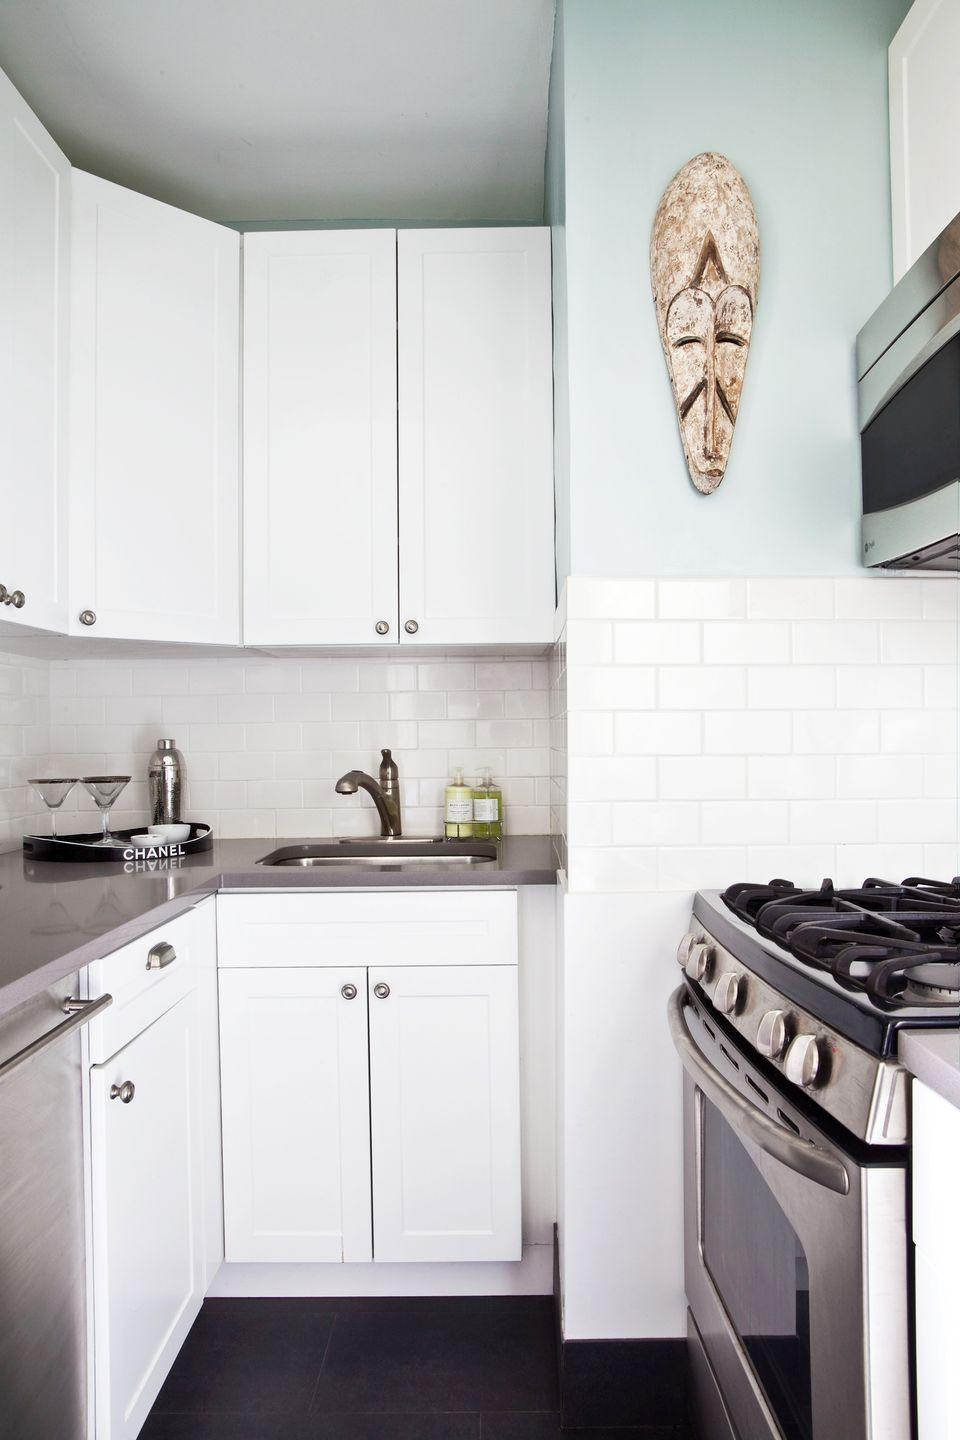 "<p>When space is limited, you have to find creative ways to add a little fancy flair. Here, interior designer <a href=""http://www.dcdny.com/"" rel=""nofollow noopener"" target=""_blank"" data-ylk=""slk:Danielle Colding"" class=""link rapid-noclick-resp"">Danielle Colding</a> added a powder blue accent wall and a sculpture but kept everything else glistening and white. The Chanel tray on the counter for serving also doubles as decor. </p>"